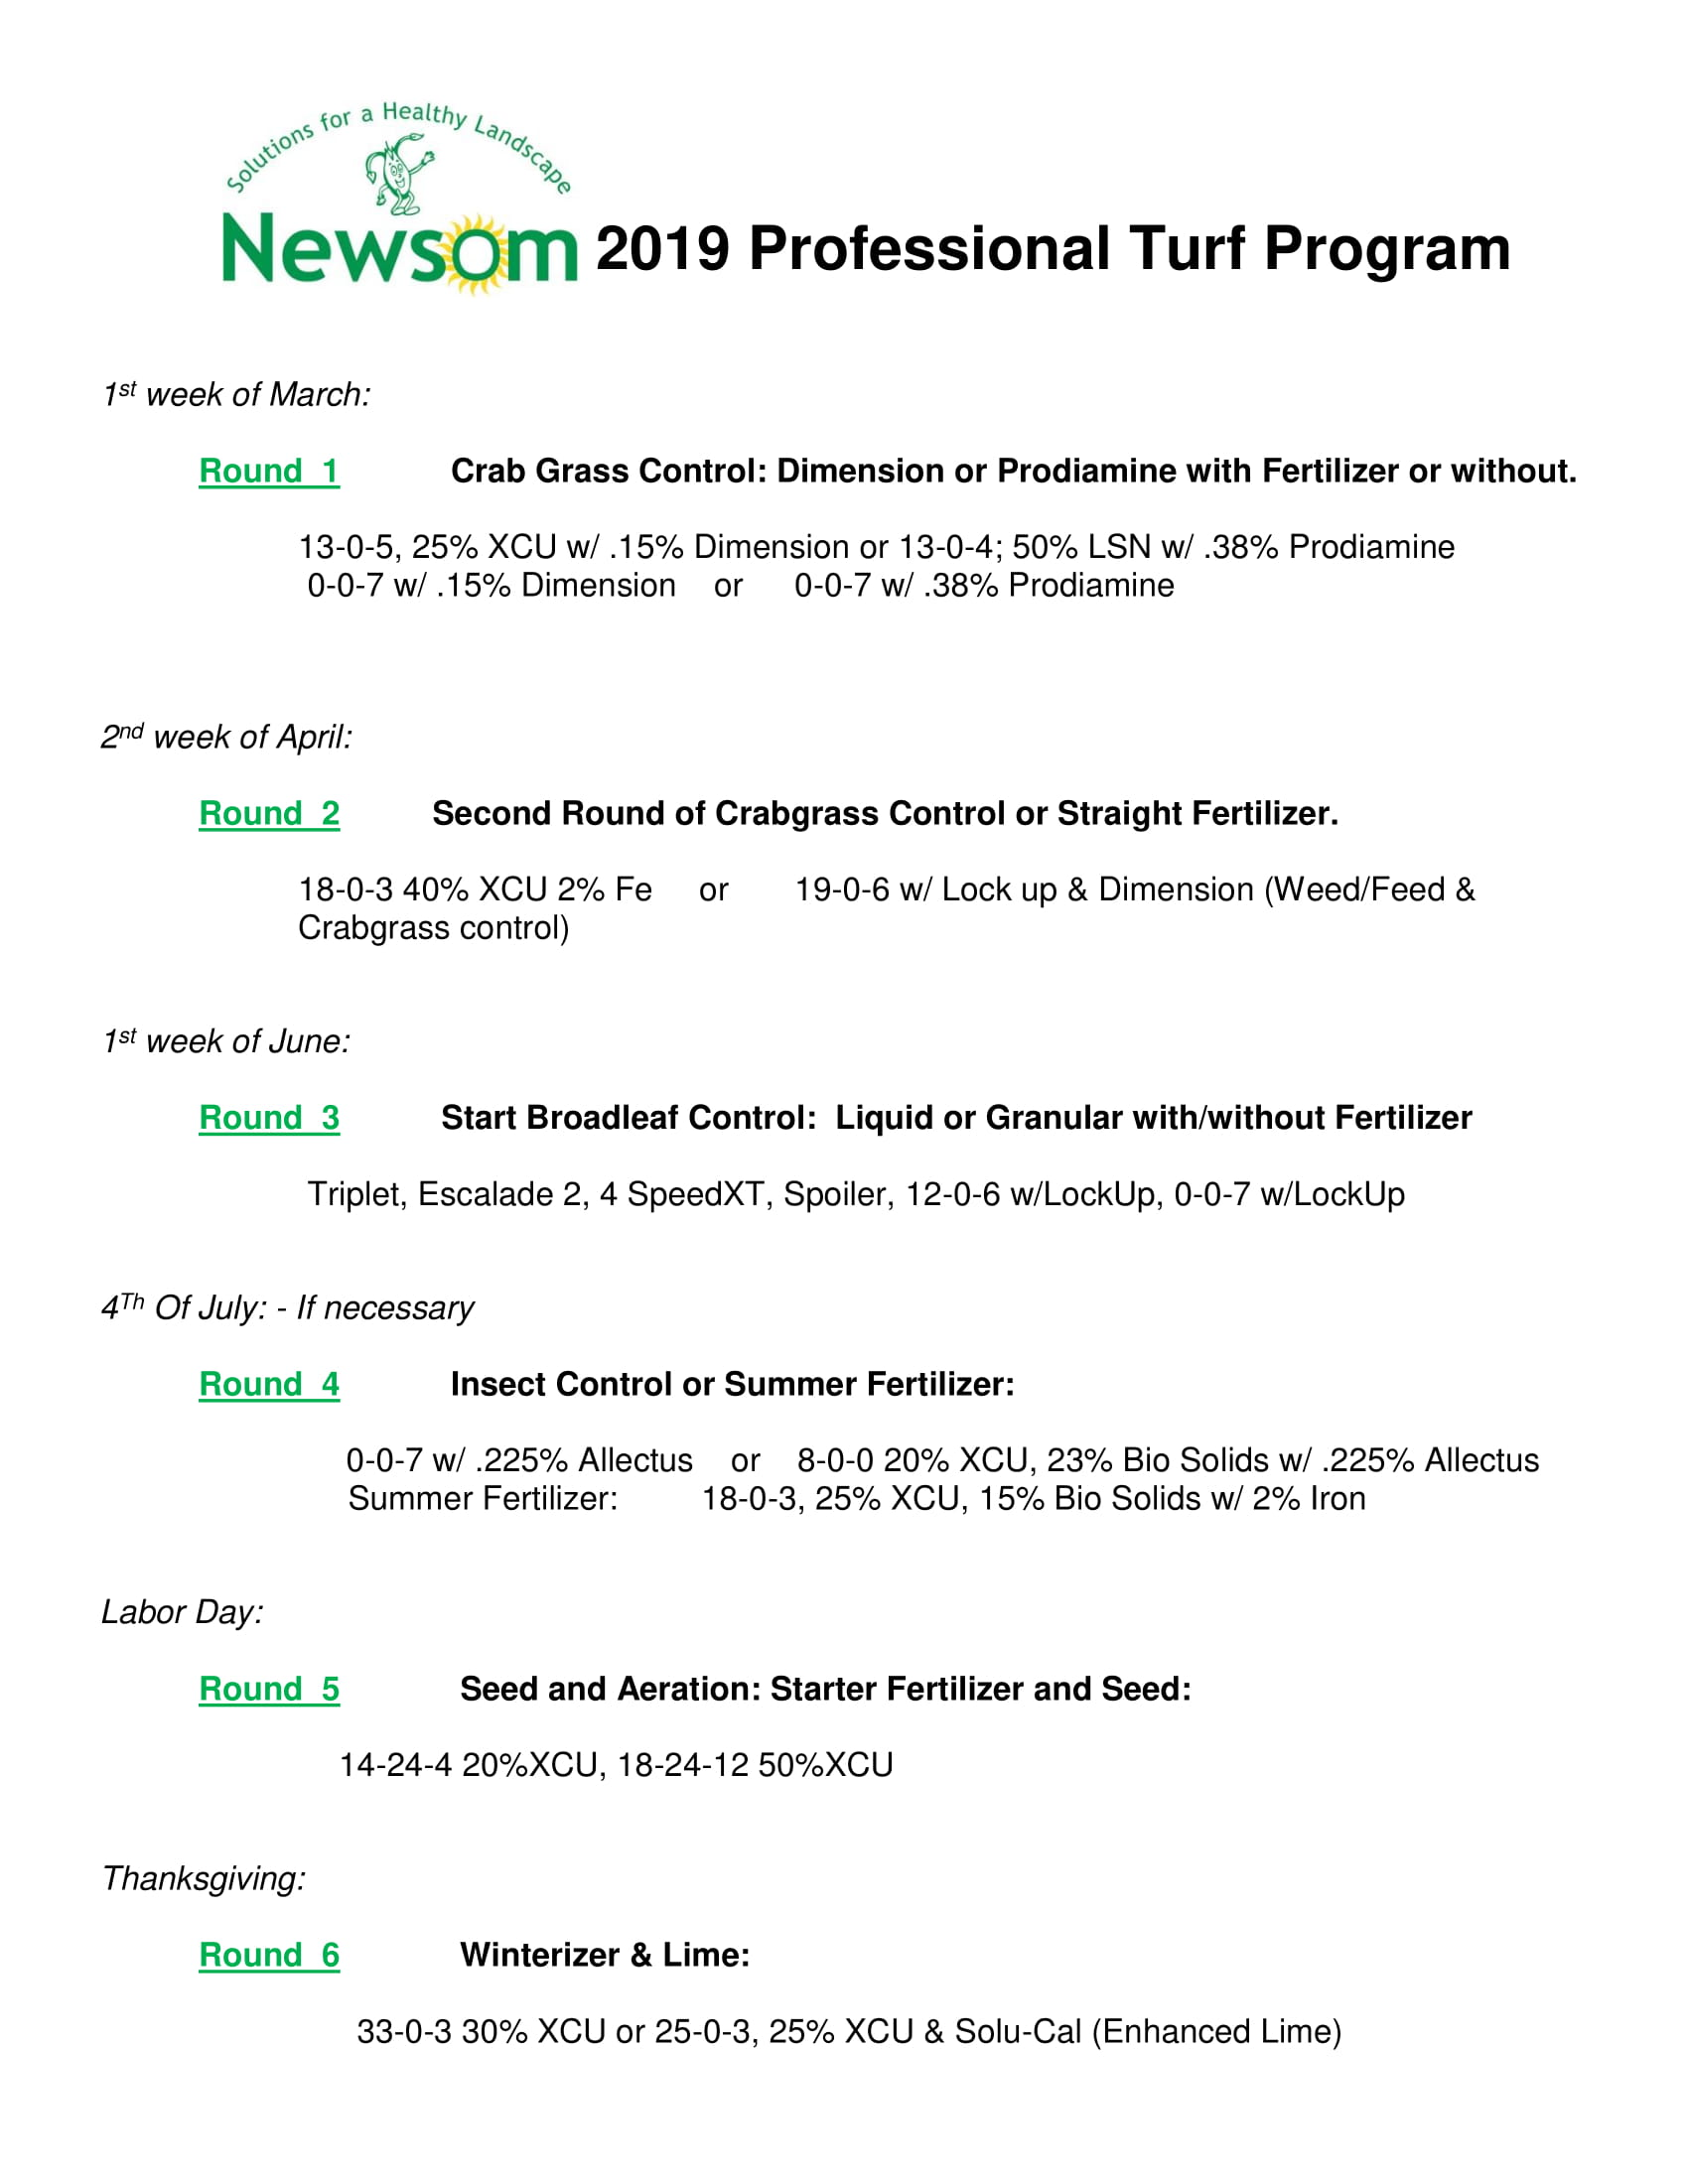 Newsom Professional Turf Program 2018